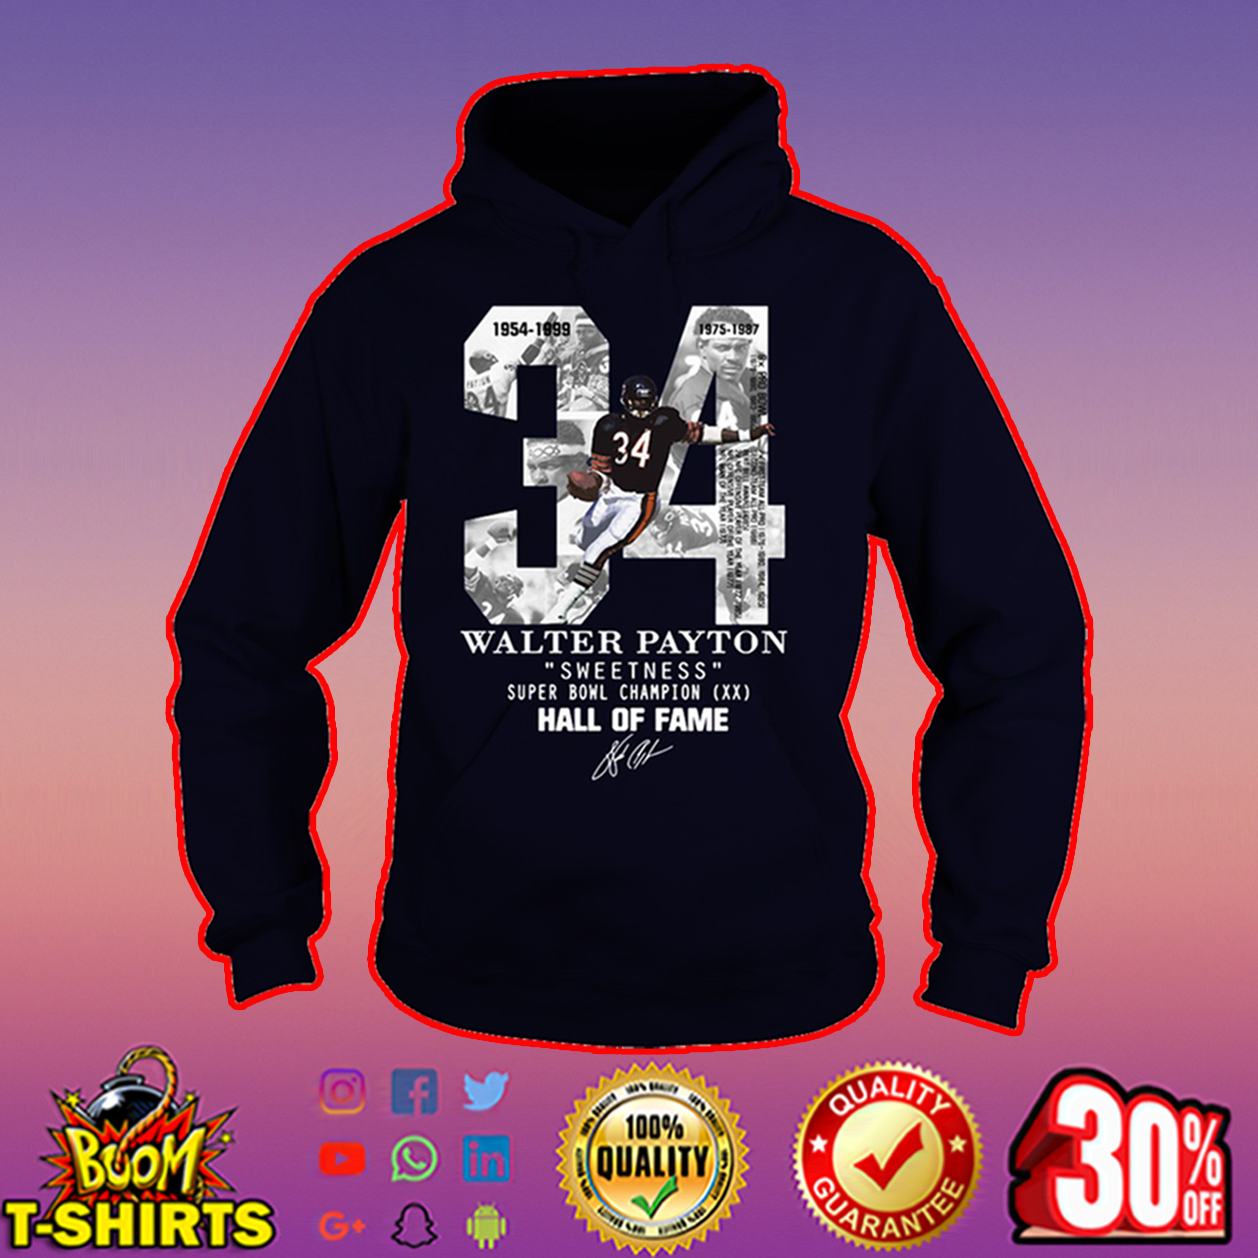 newest collection d9b28 bb08e Walter Payton Sweetness Super Bowl Champion Hall of fame signature shirt,  hoodie, tank top